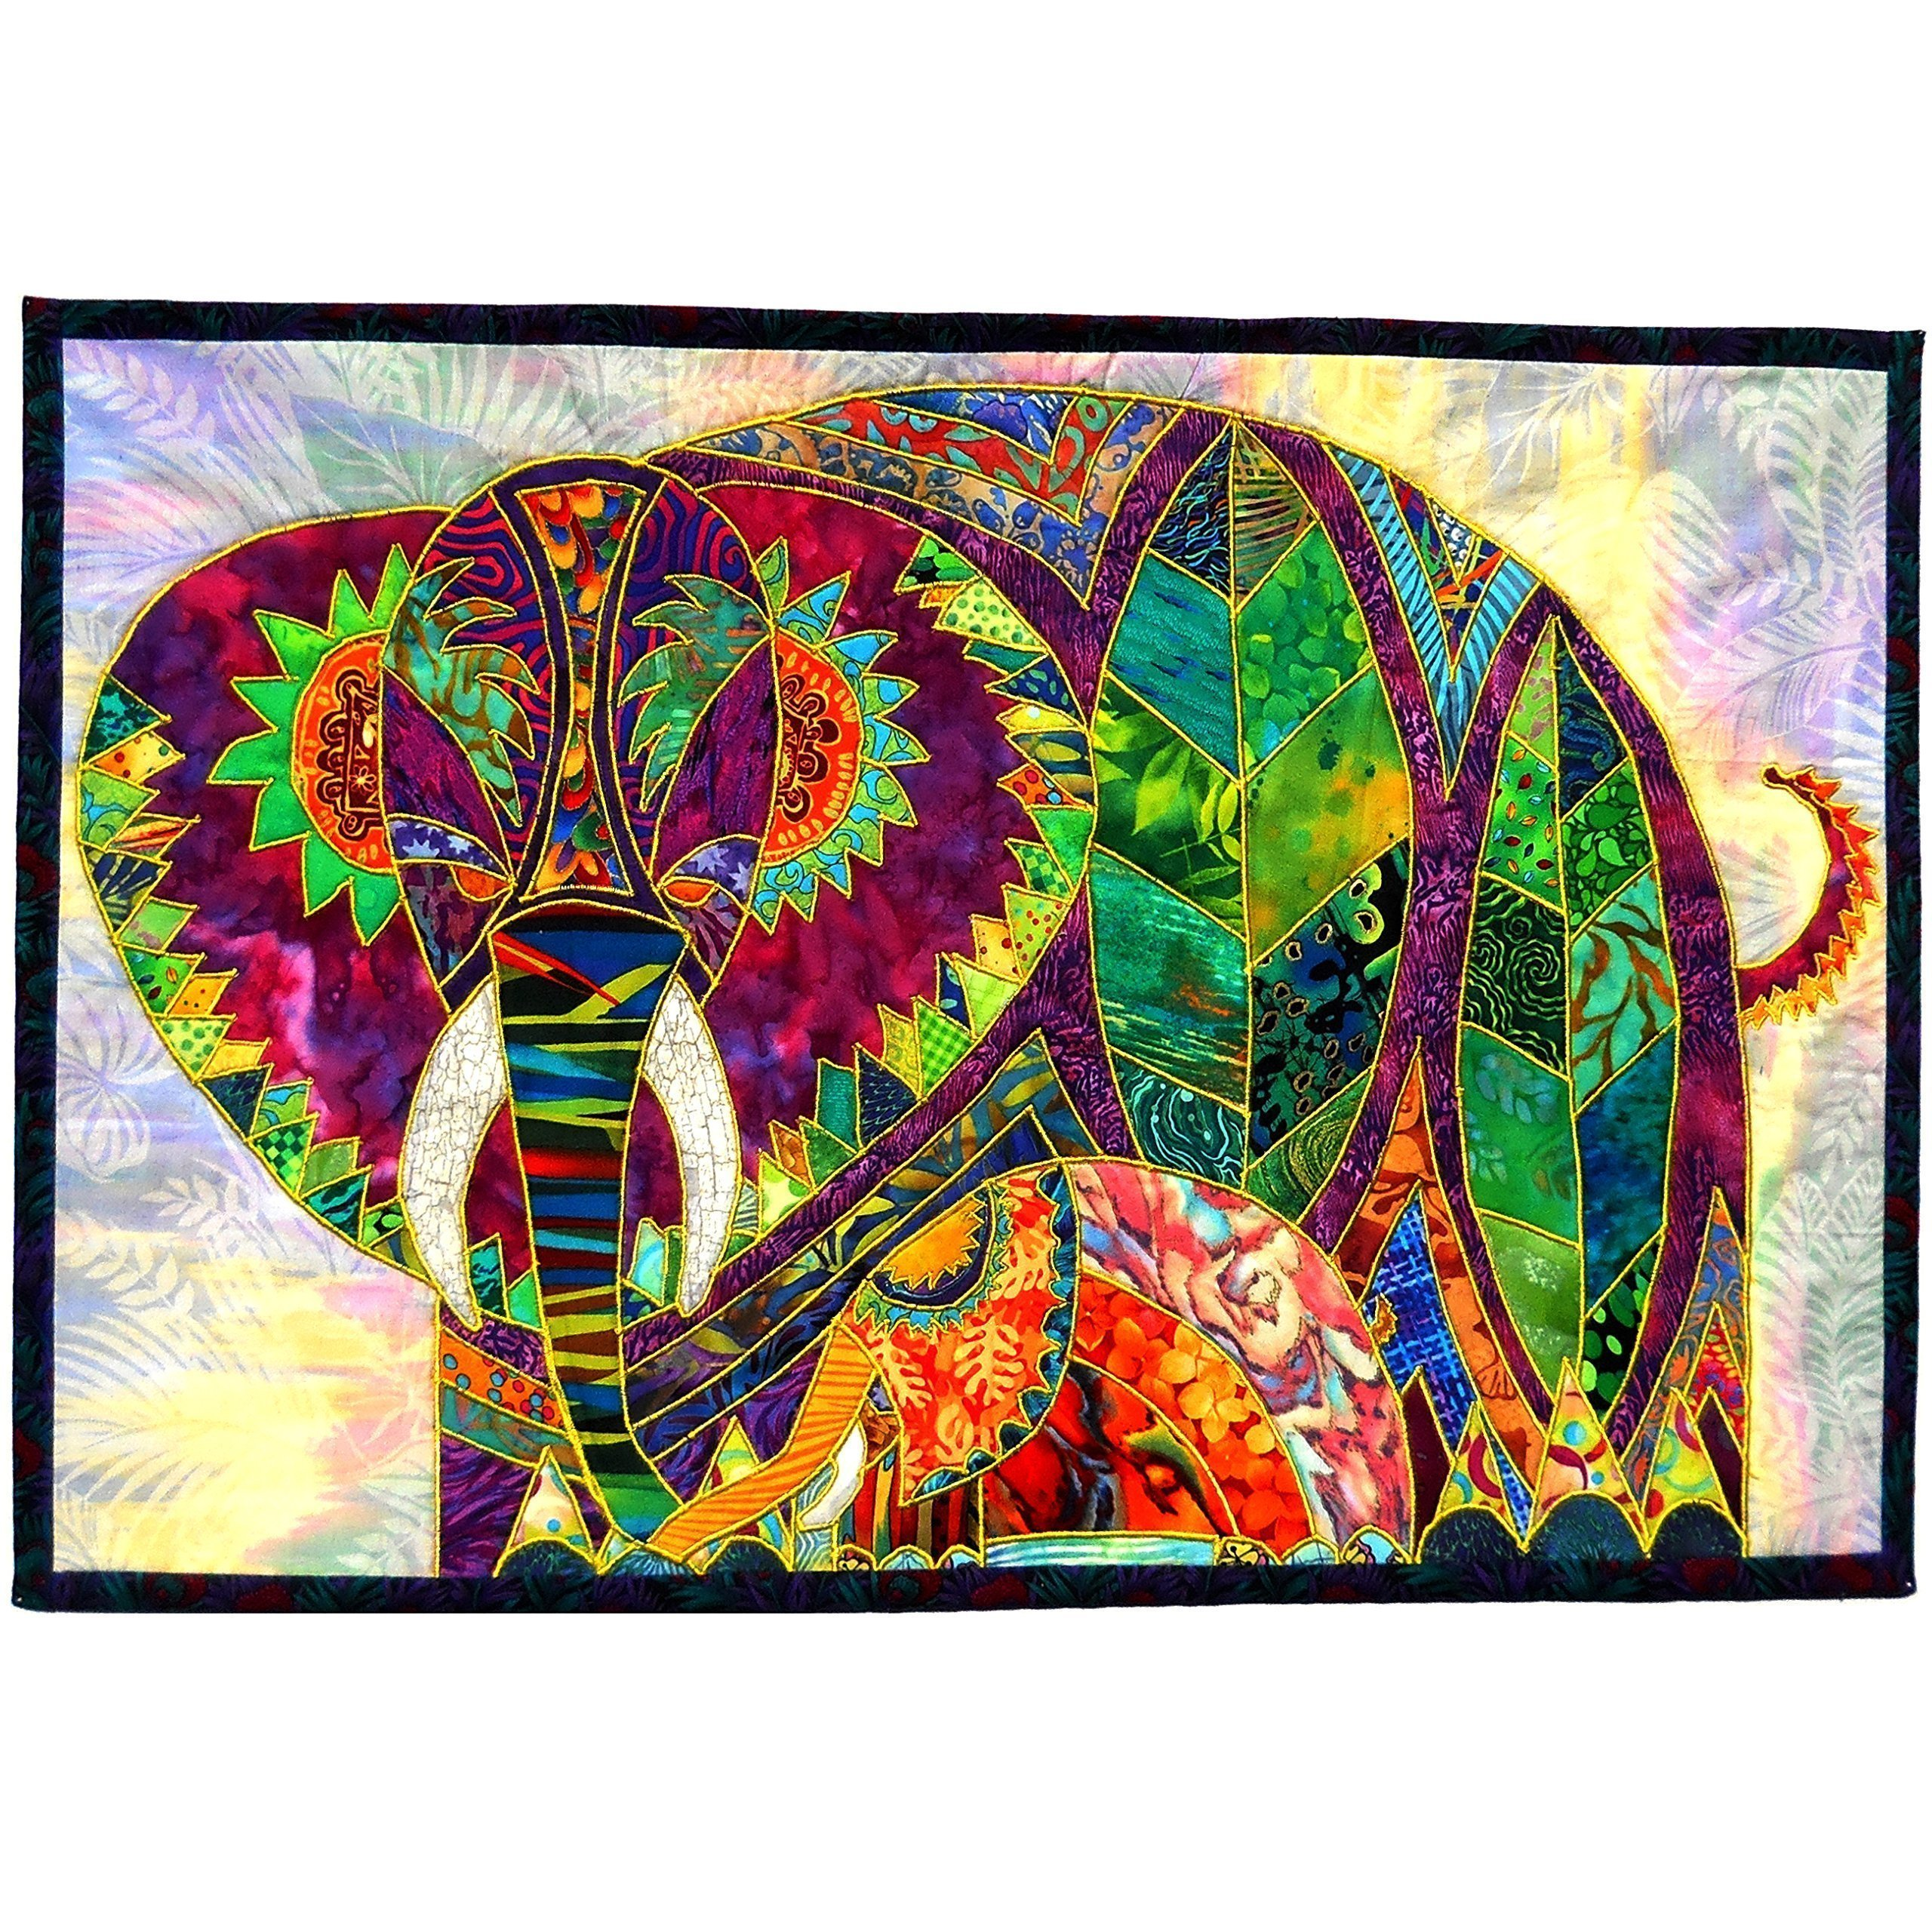 Textile Wall Hanging Animal Art Quilt Tapestry,Rose Tu & Lily Mama & Baby Elephants, OOAK Home Decor by Dreamscape Studio (Image #1)